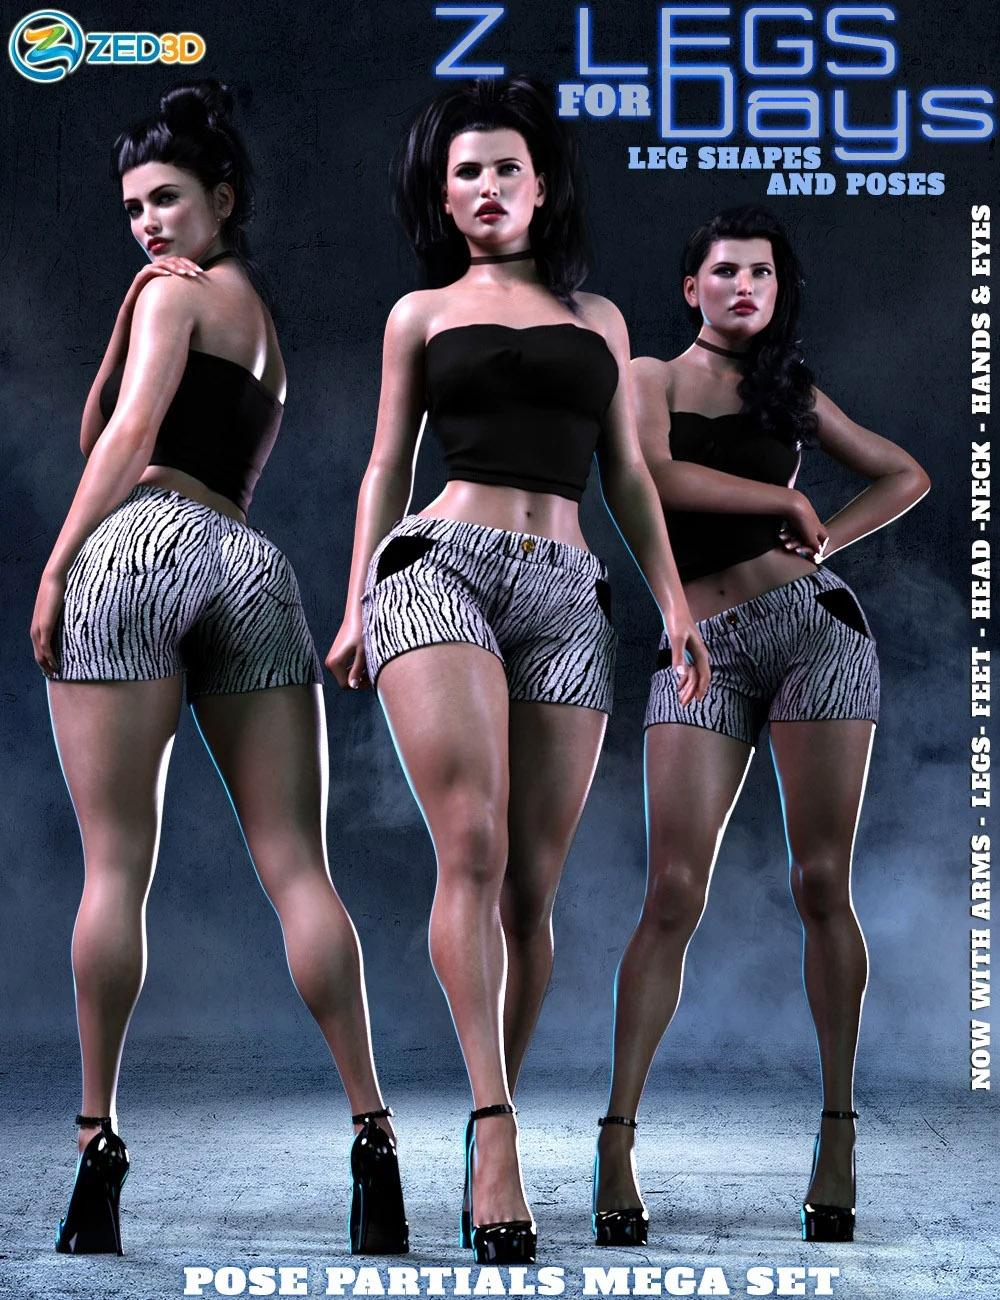 Z Legs for Days Shapes and Poses Mega Set